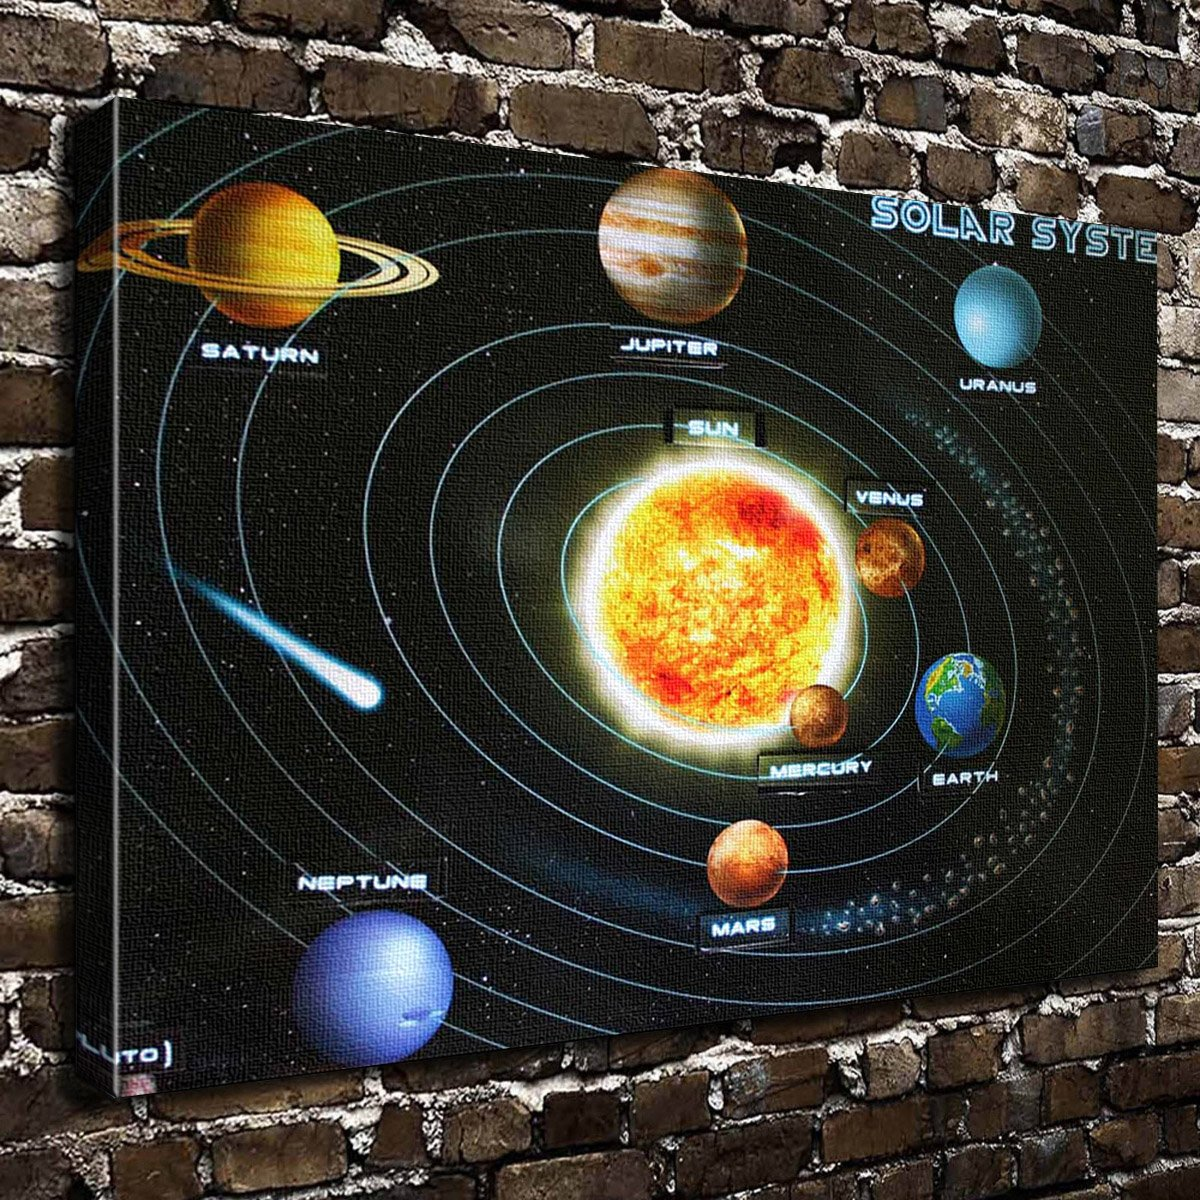 Romantic Simple COLORSFORU Humor Planets Educational Solar System Space Custom Canvas Print 20x16 Inch Framed Home Office Wall Decor Art Print Poster Ready To Hang